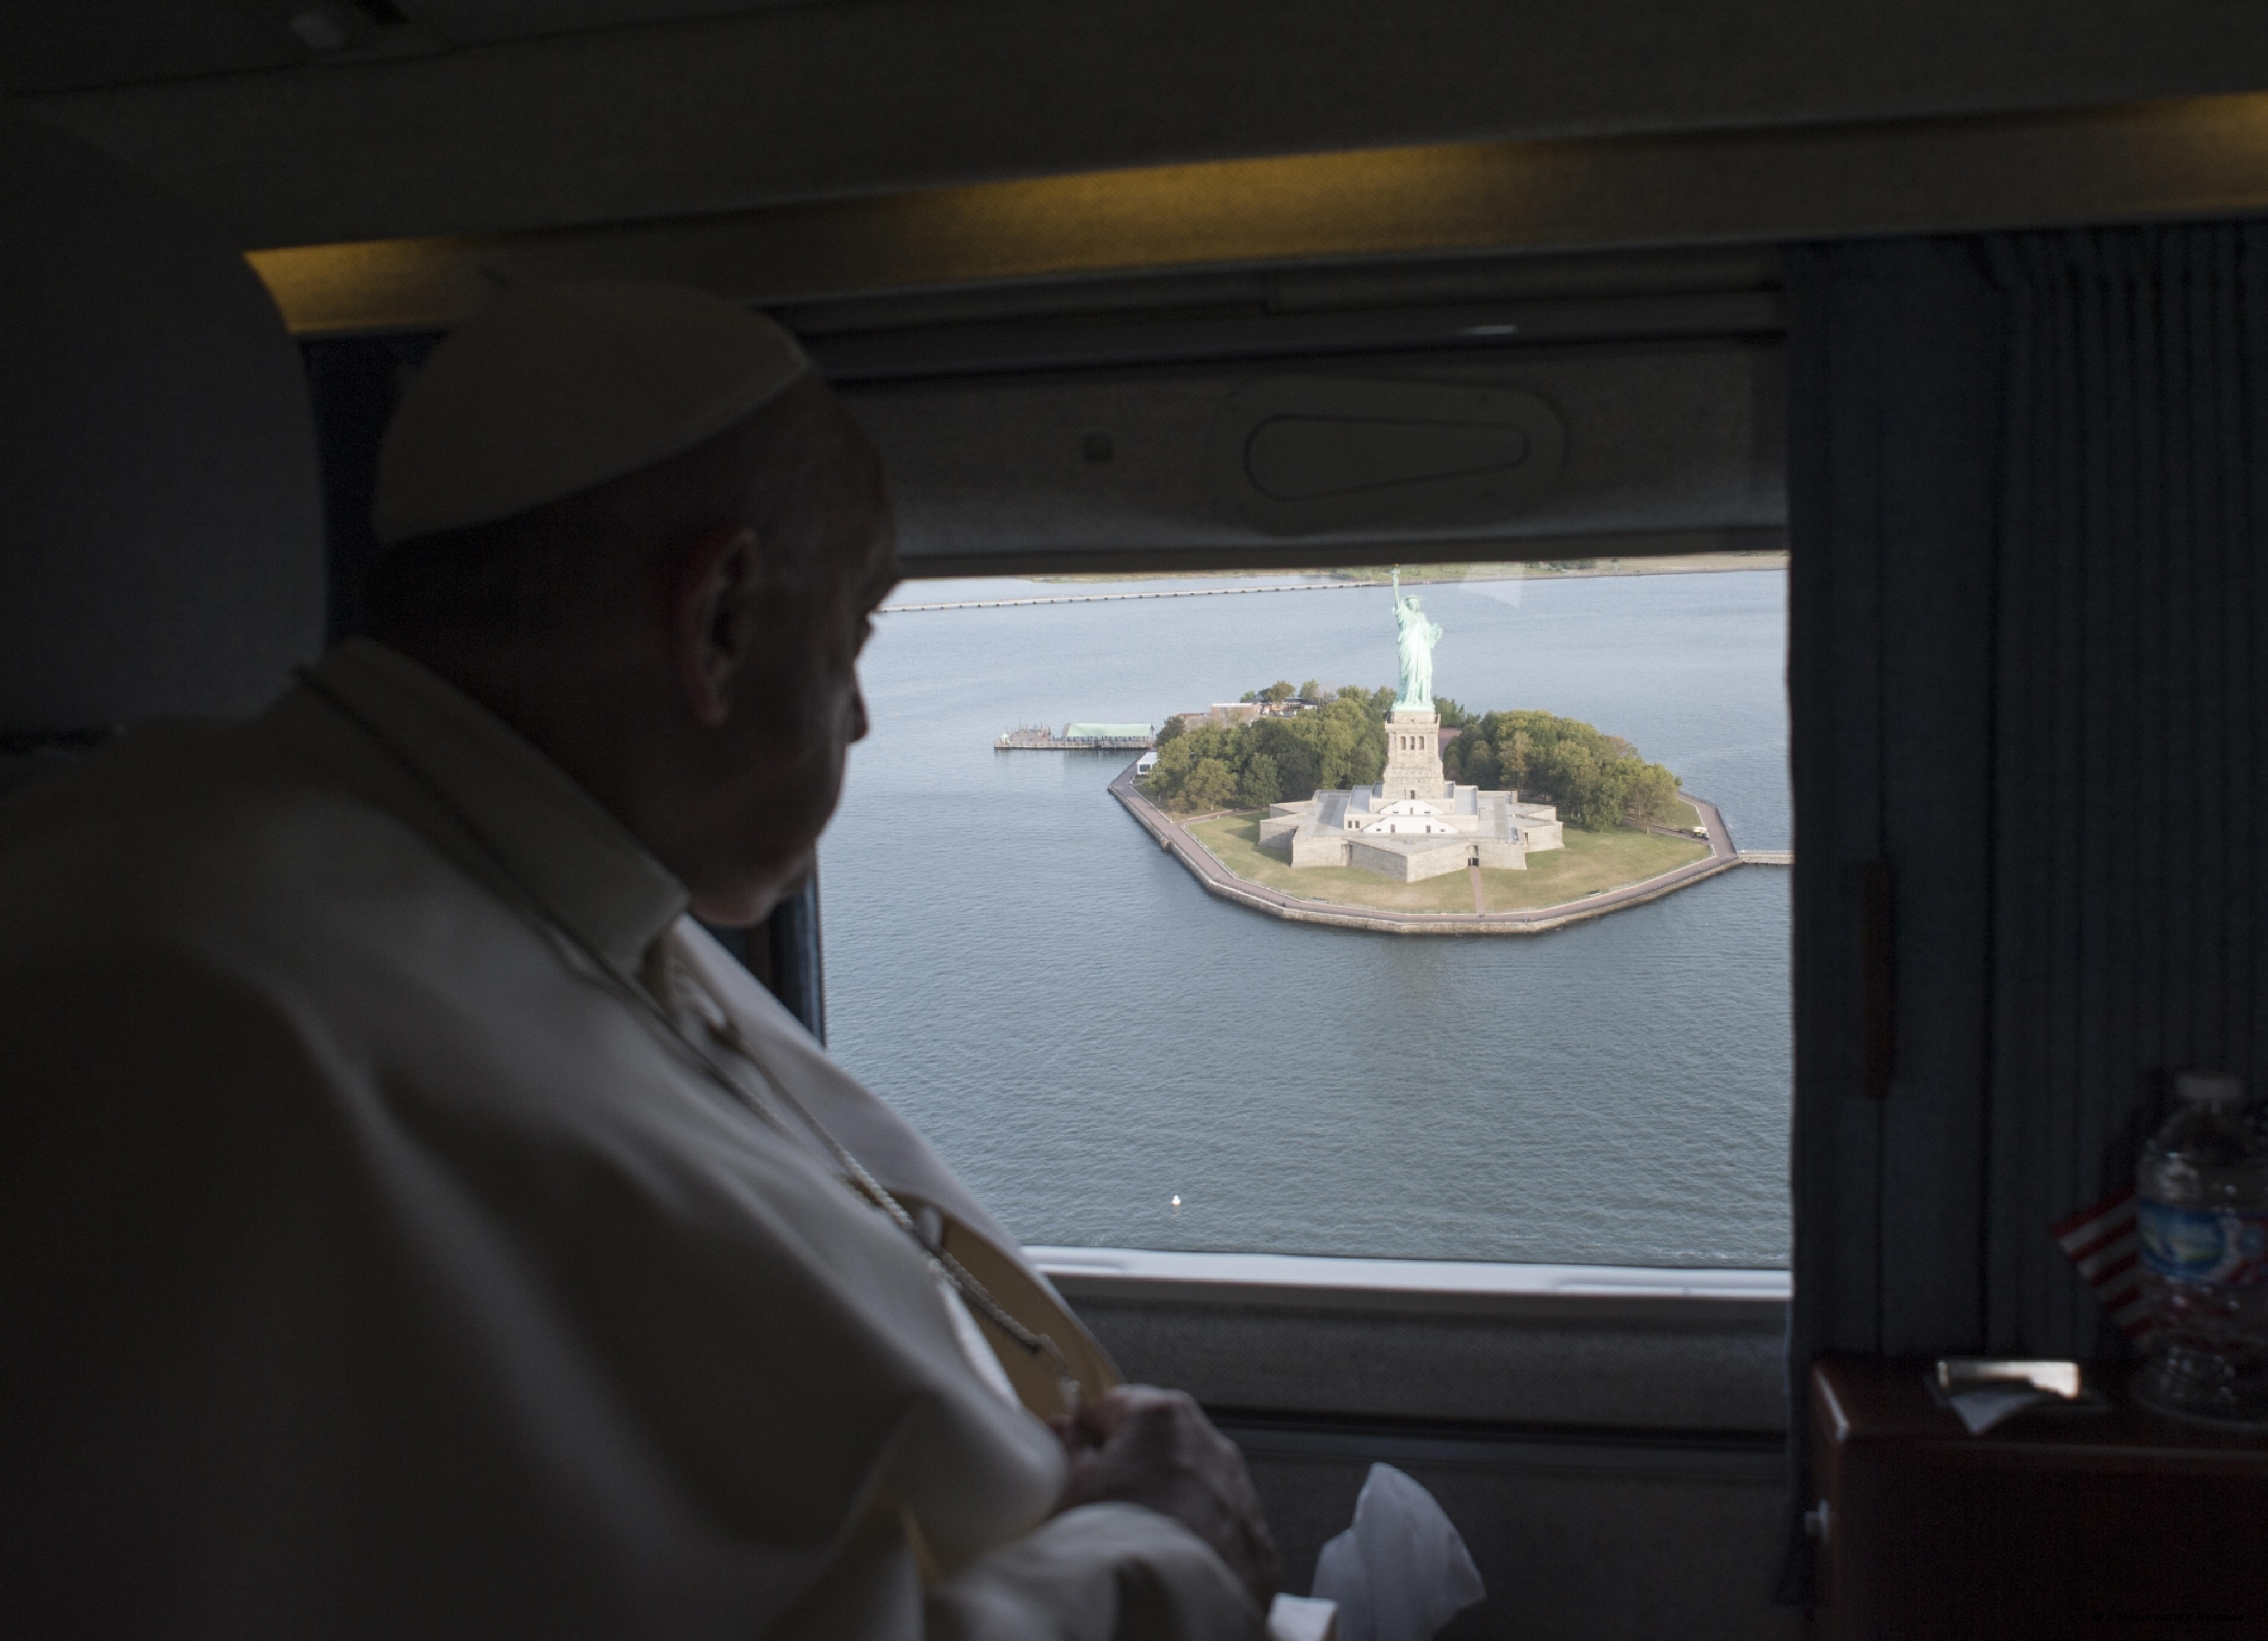 Pope Francis looks at the Statue of Liberty from the window of the helicopter on his way to the John F. Kennedy International Airport